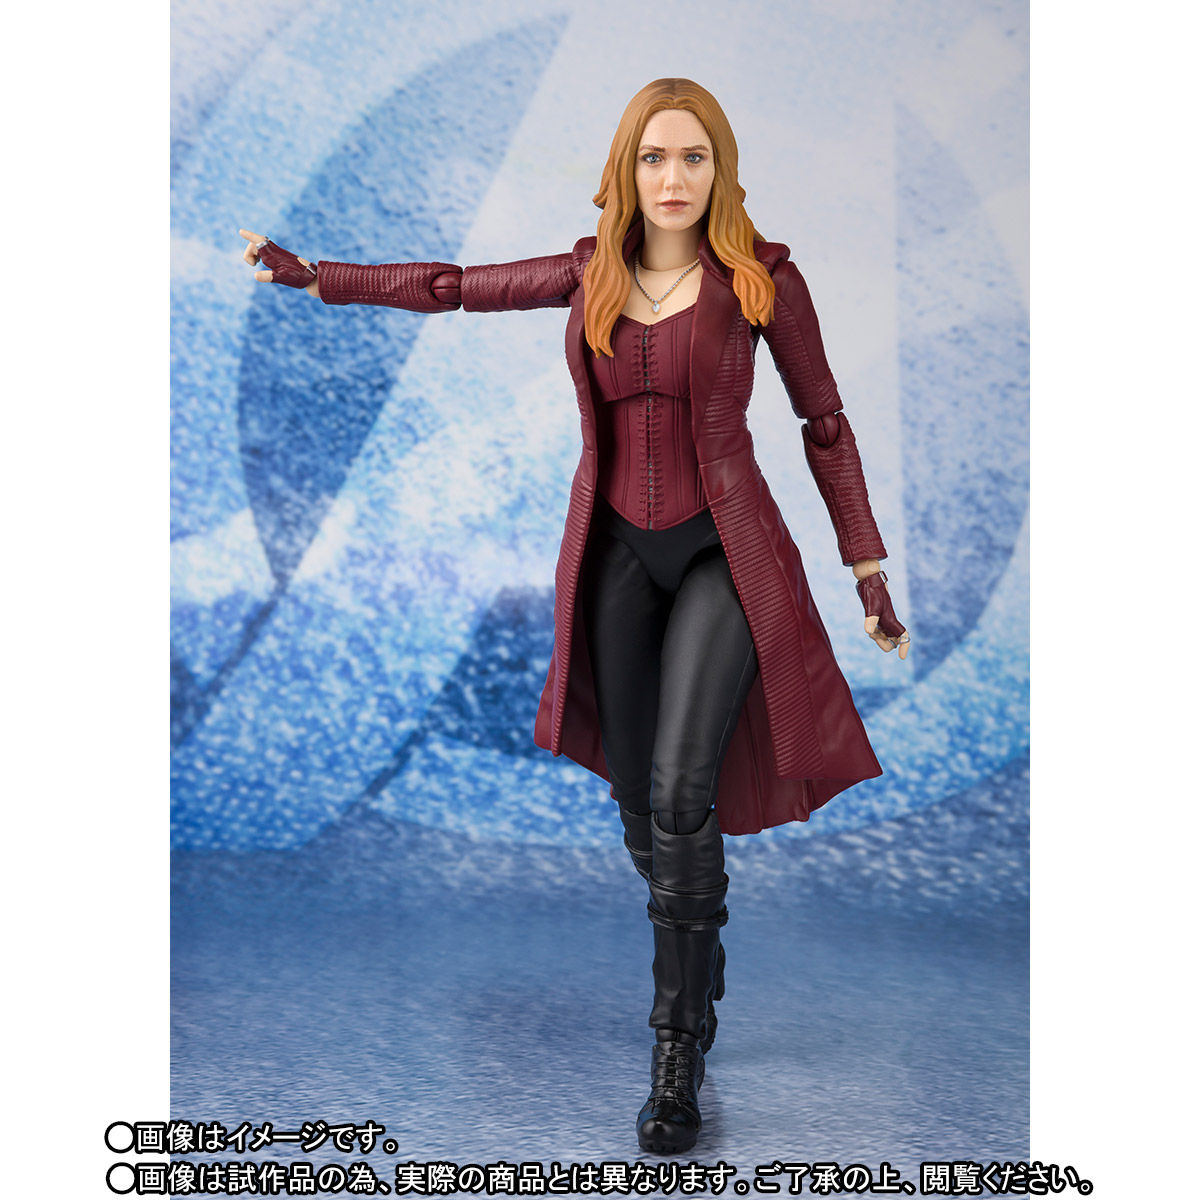 Avengers: Infinity War - S H  Figuarts Scarlet Witch - The Toyark - News